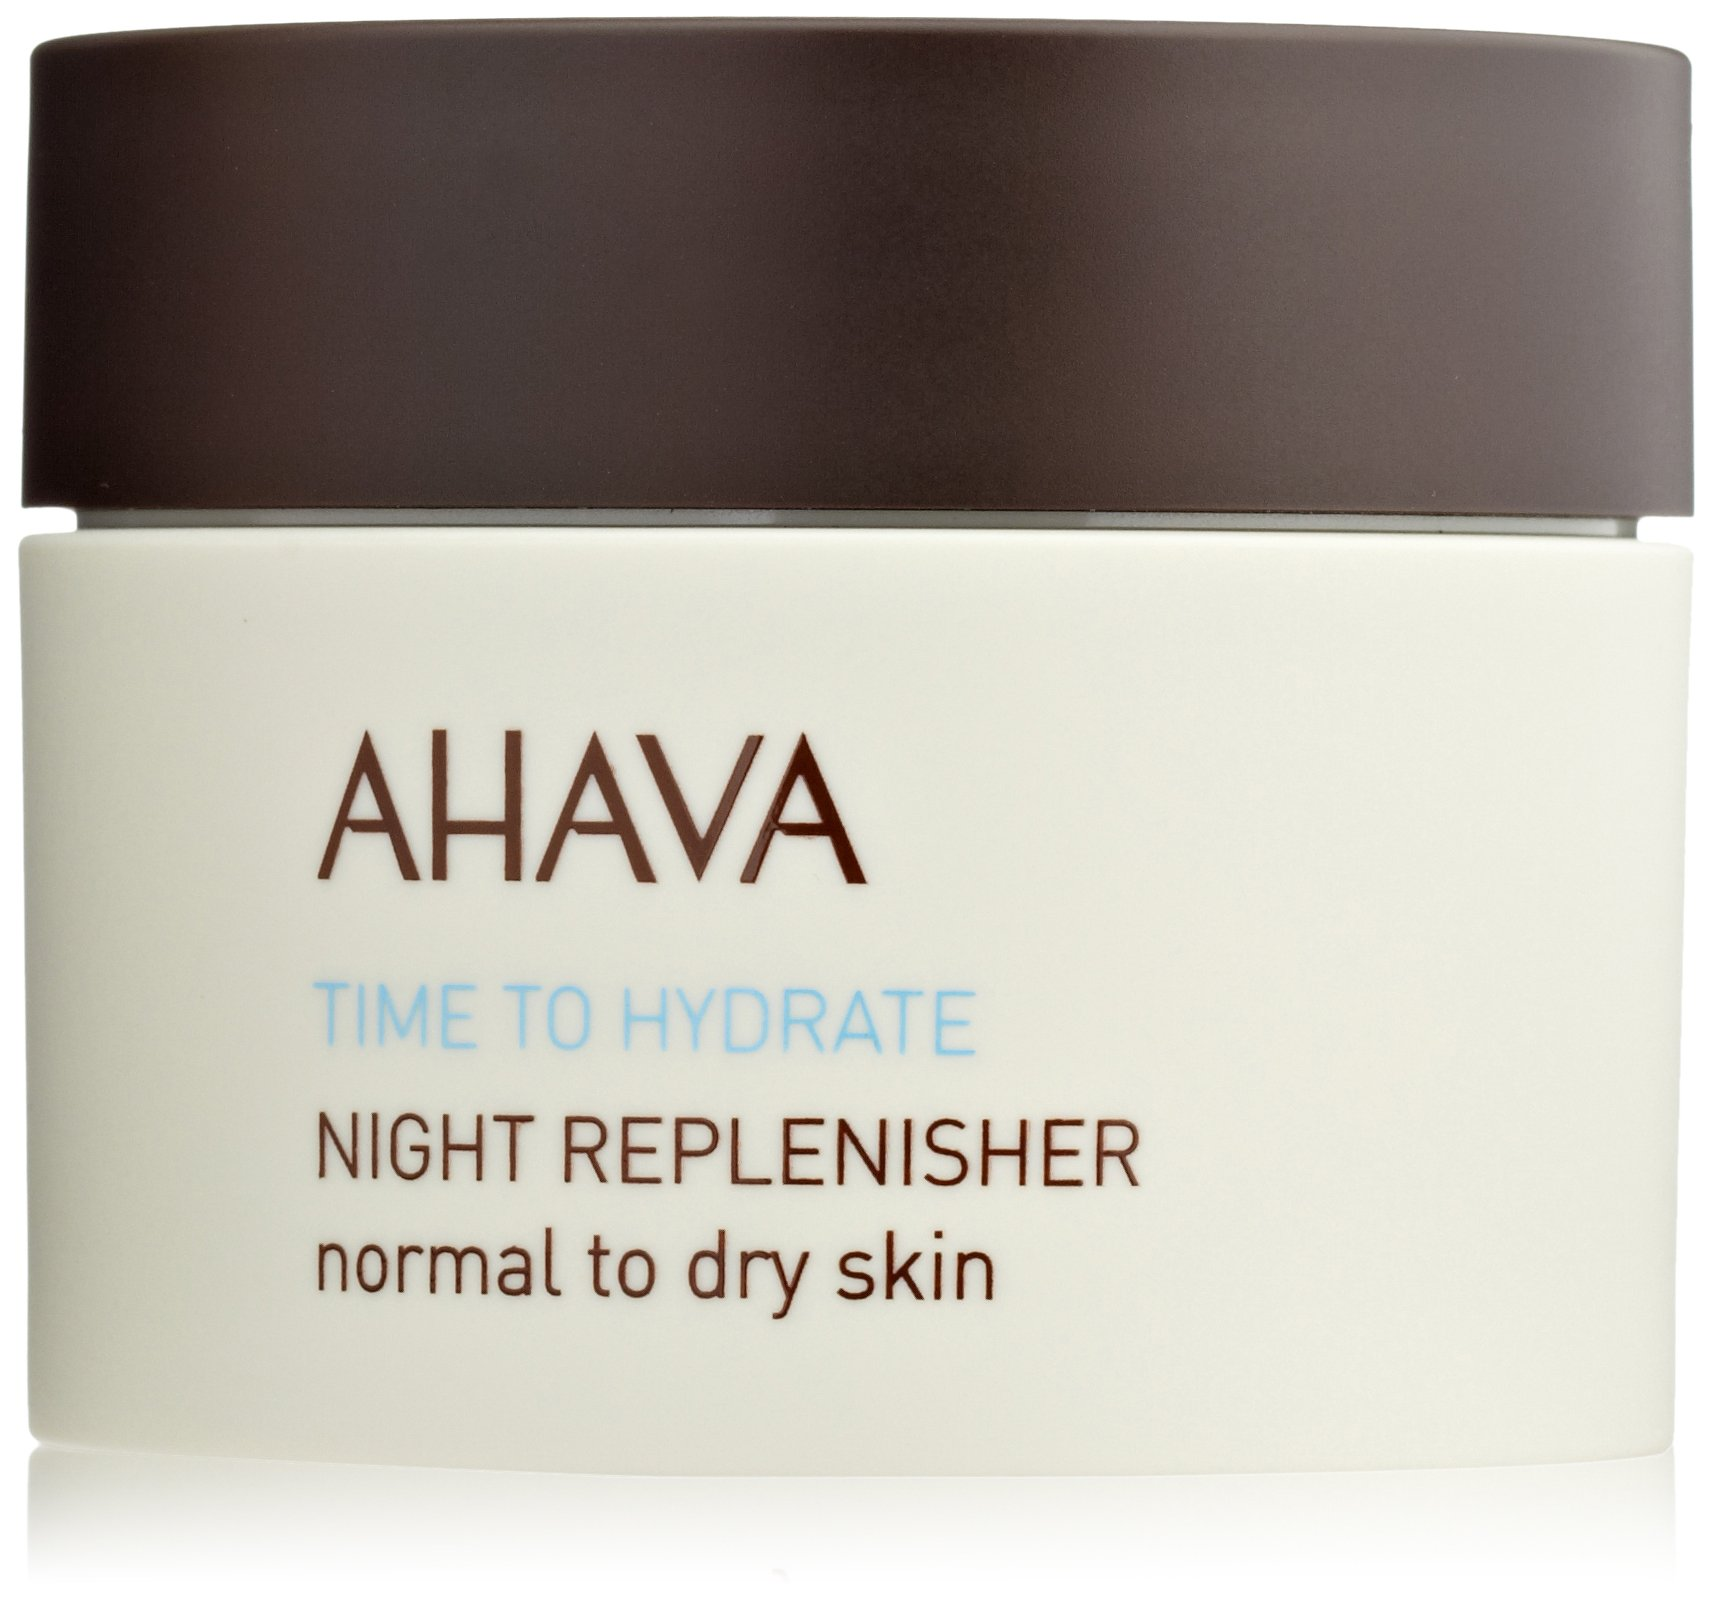 AHAVA Nighttime Face Moisturizer & Anti Aging Cream, Time to Hydrate Night Replenisher - Normal to Dry Skin, 1.7 Fl Oz